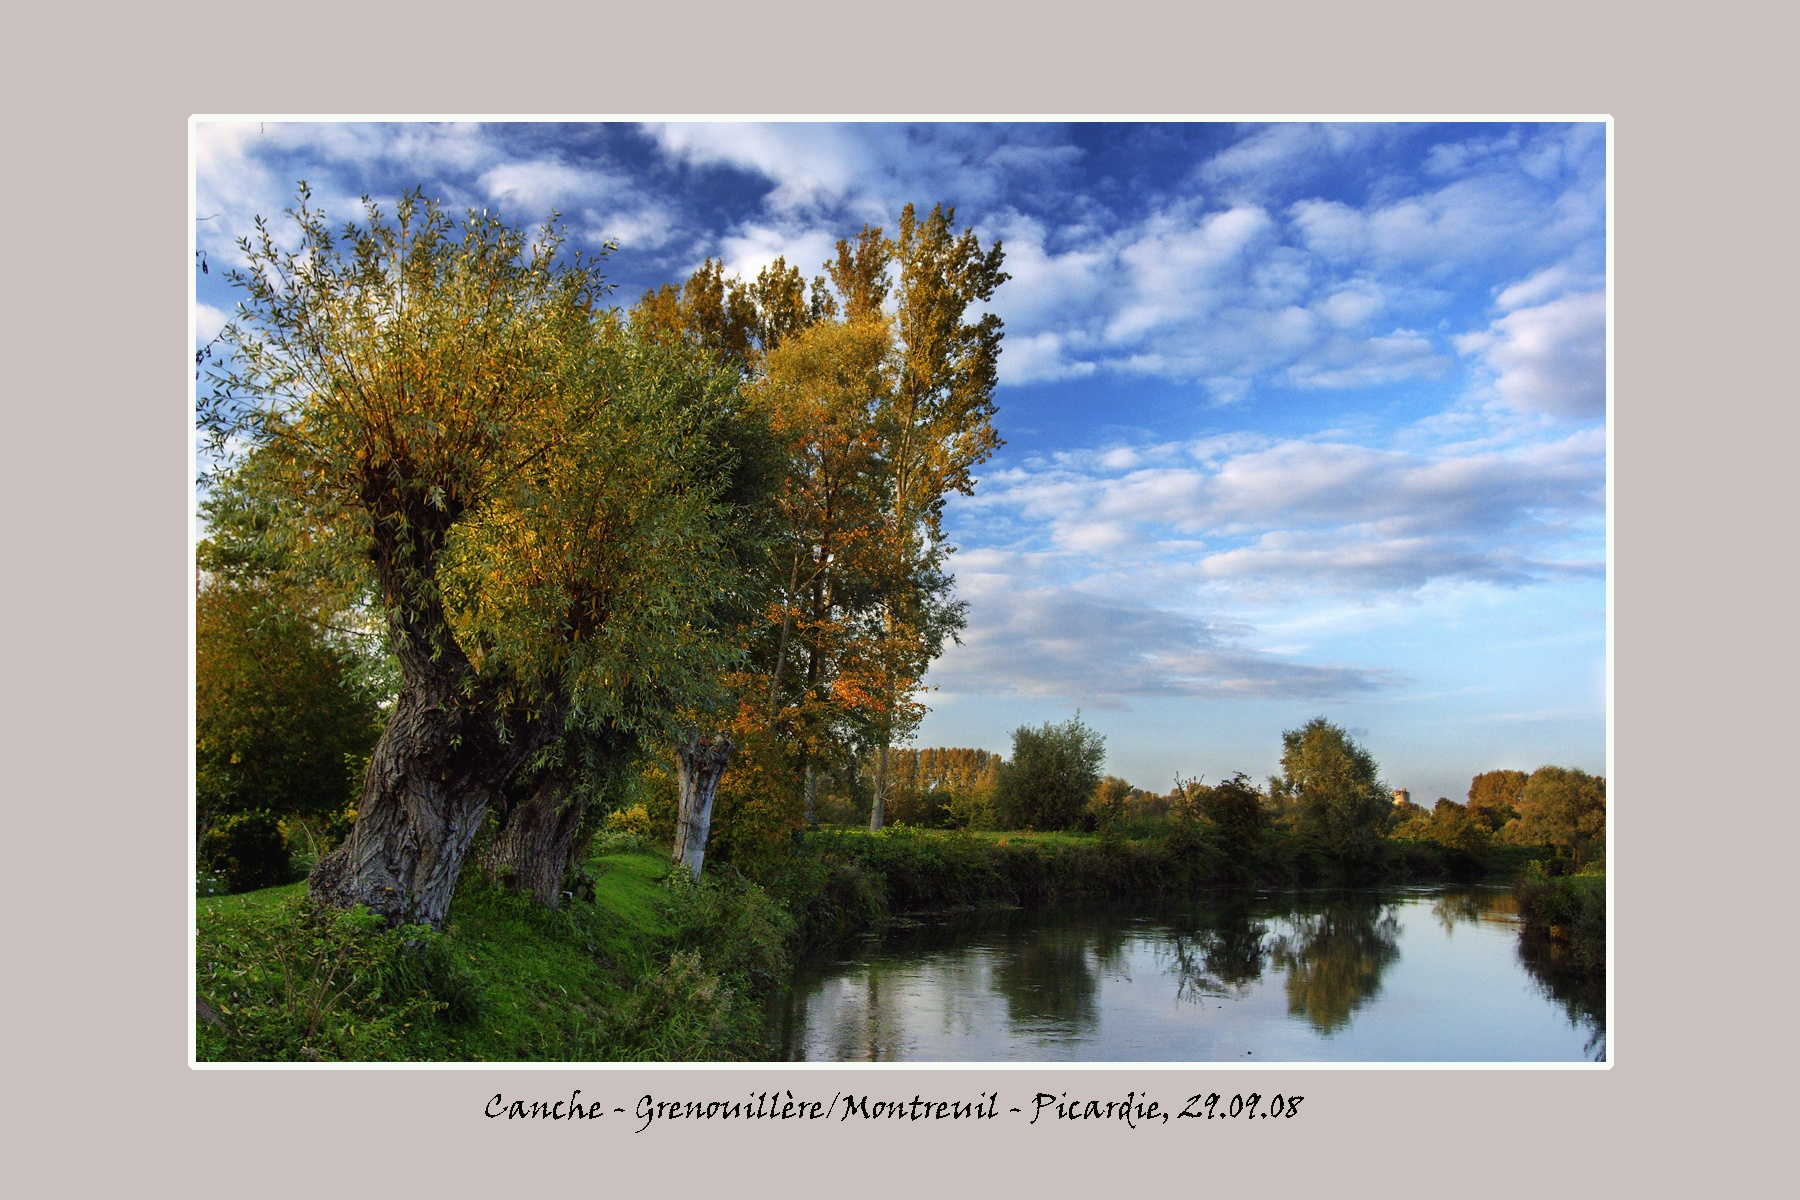 Canche2_Picardie.jpg